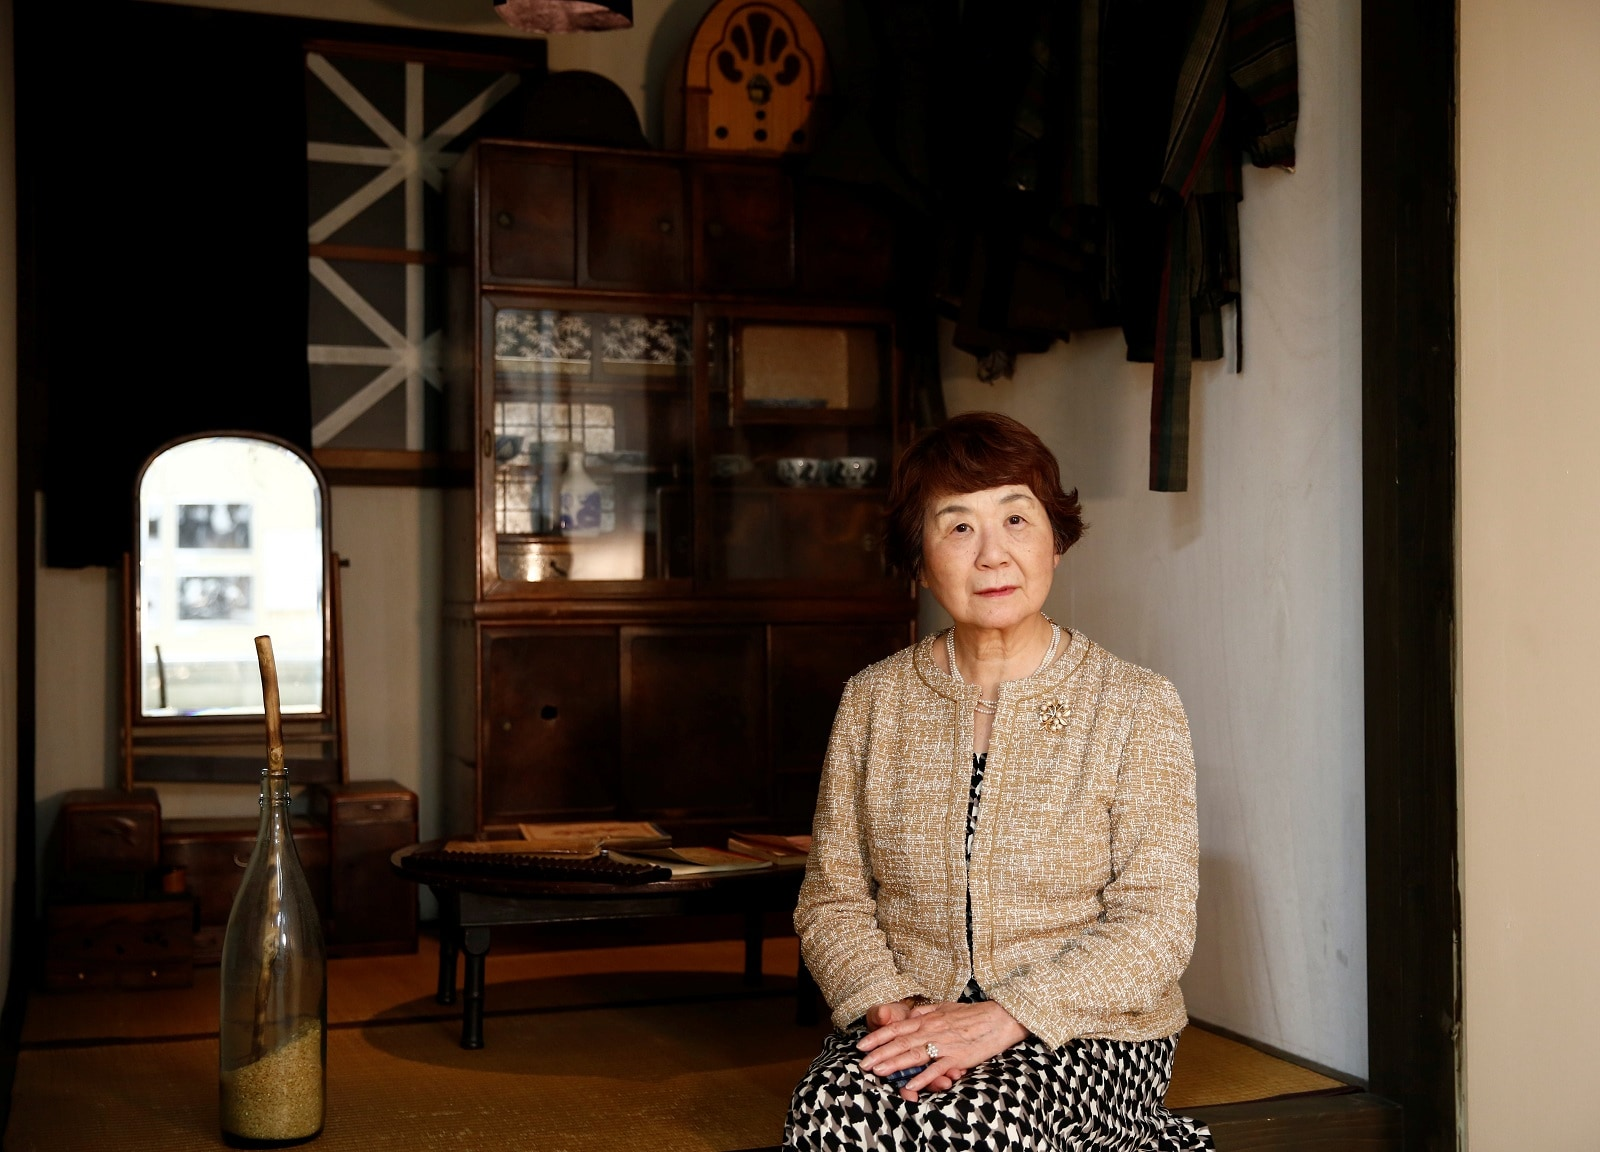 Haruyo Nihei poses at a museum about March 10, 1945, US firebombing in Tokyo, Japan April 19, 2019. REUTERS/Kim Kyung-hoon